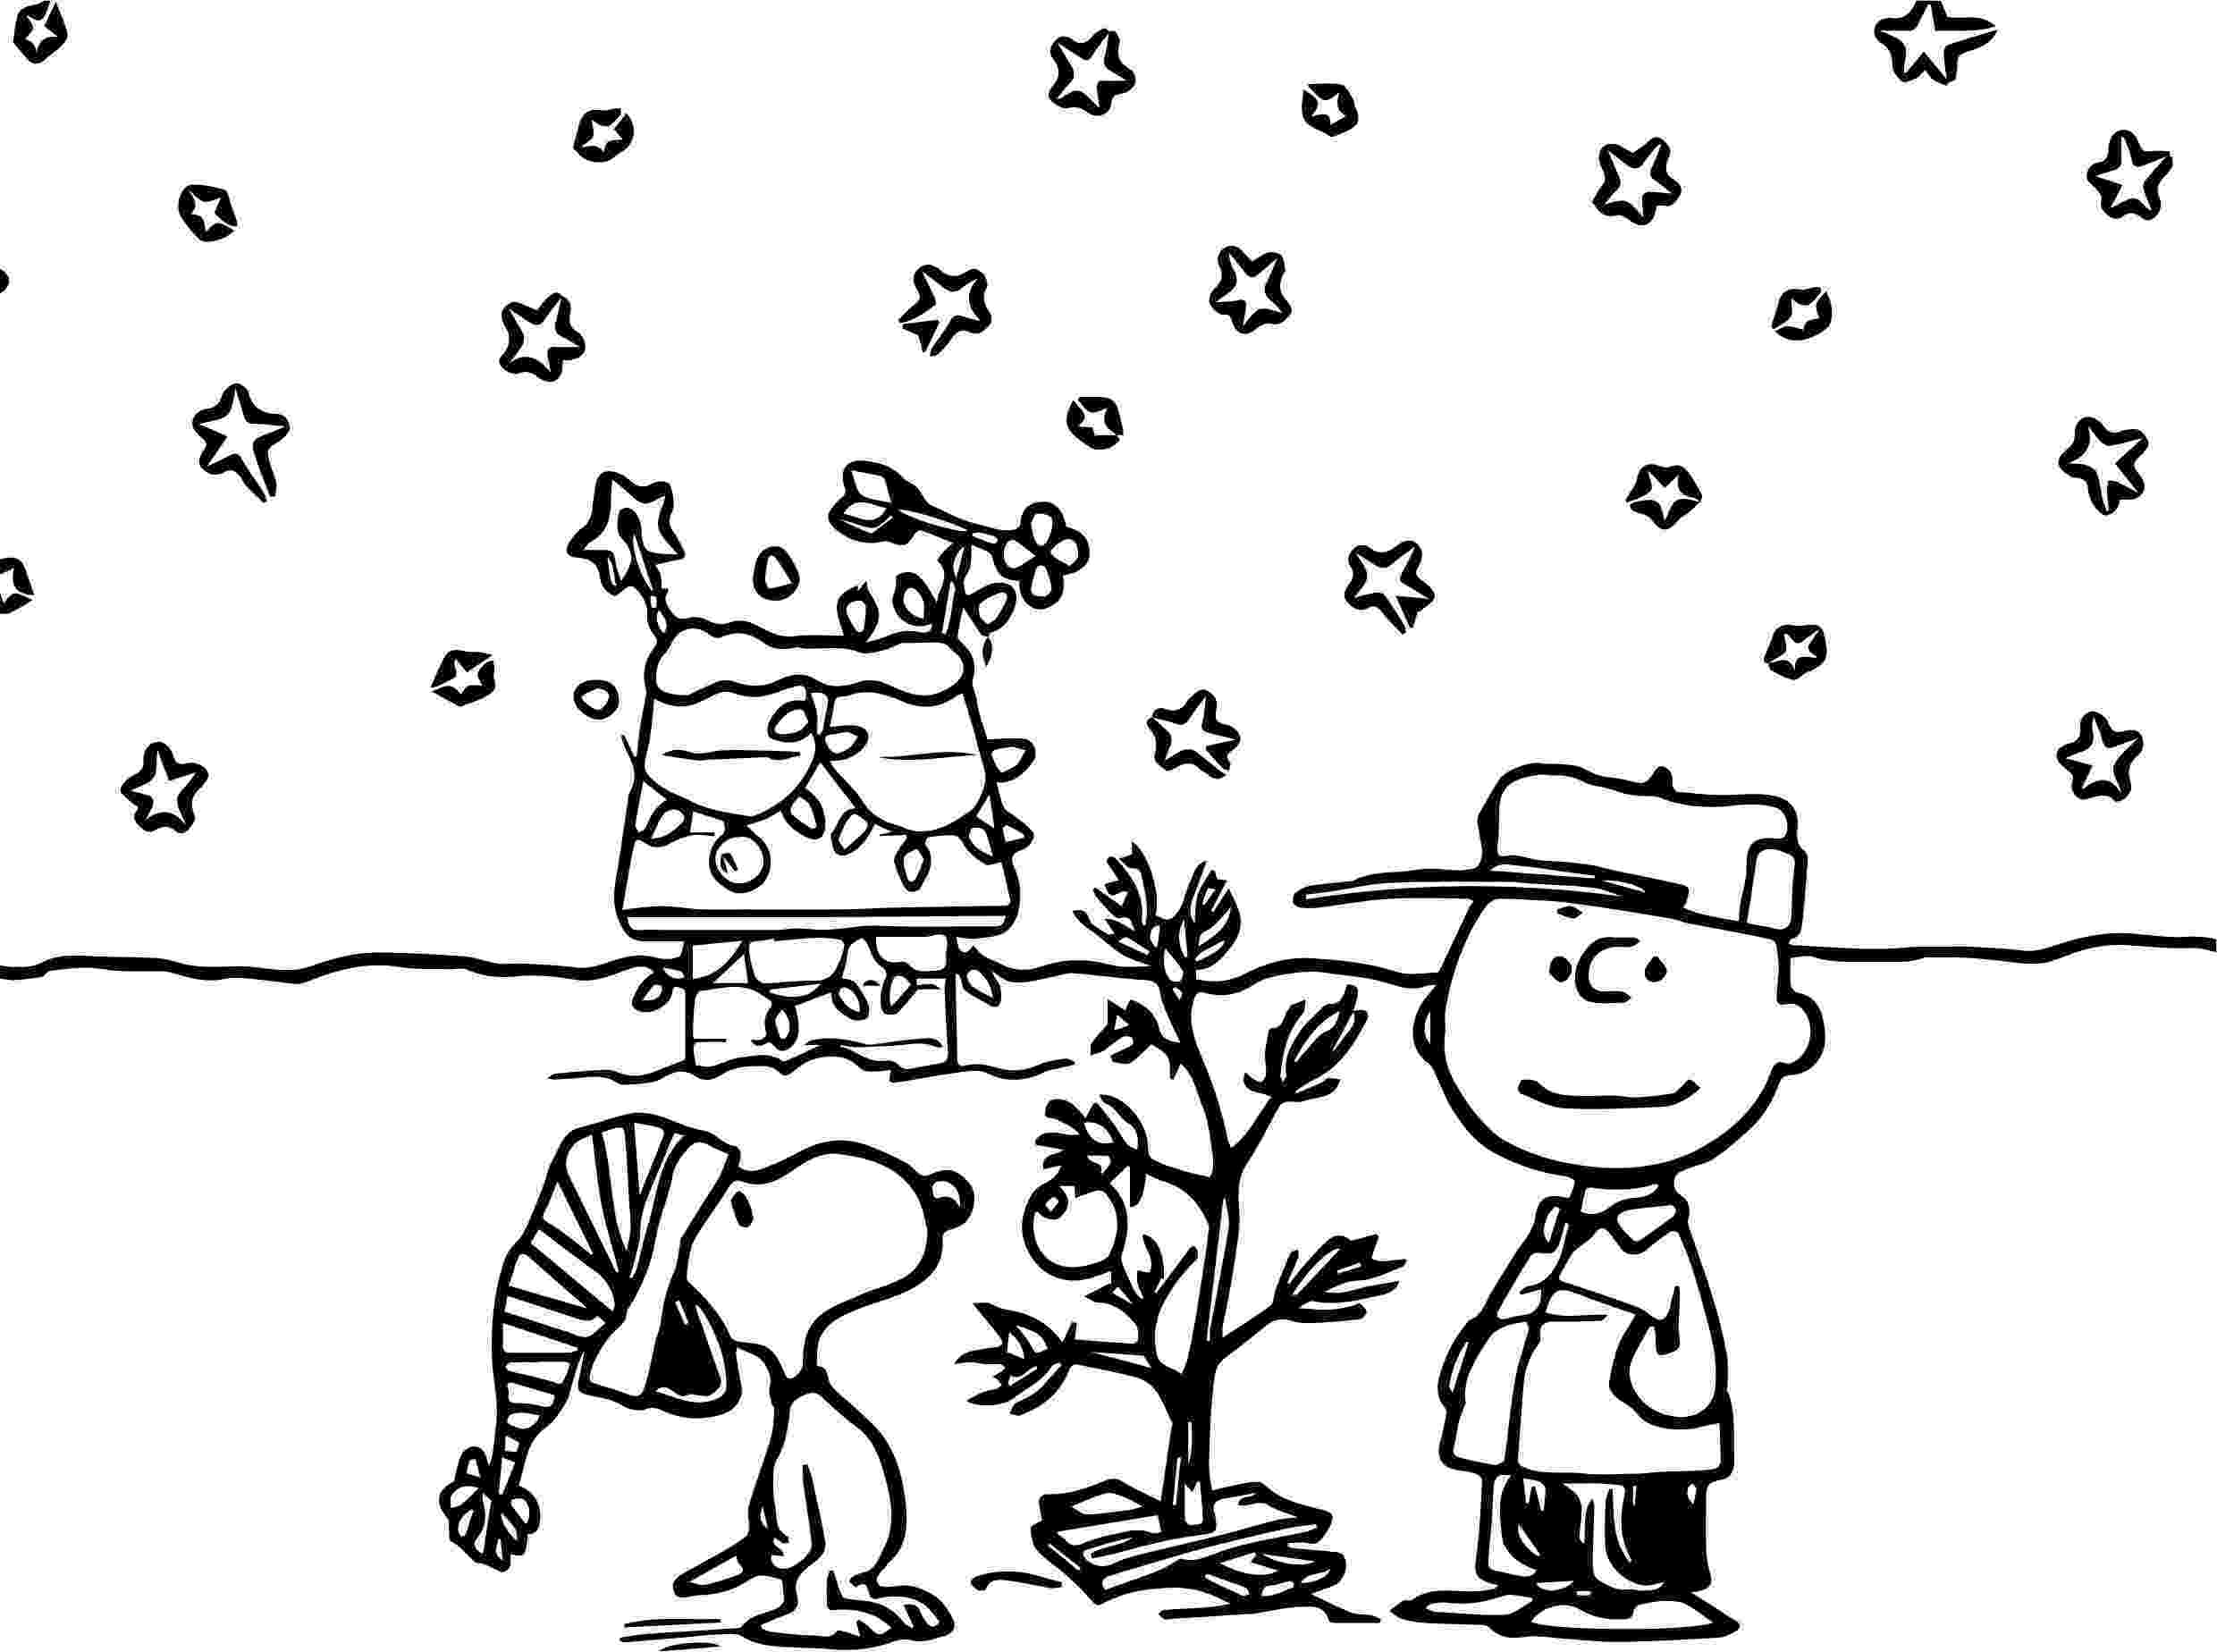 peanuts christmas coloring pages 35 best snoopy images on pinterest coloring pictures for coloring christmas pages peanuts